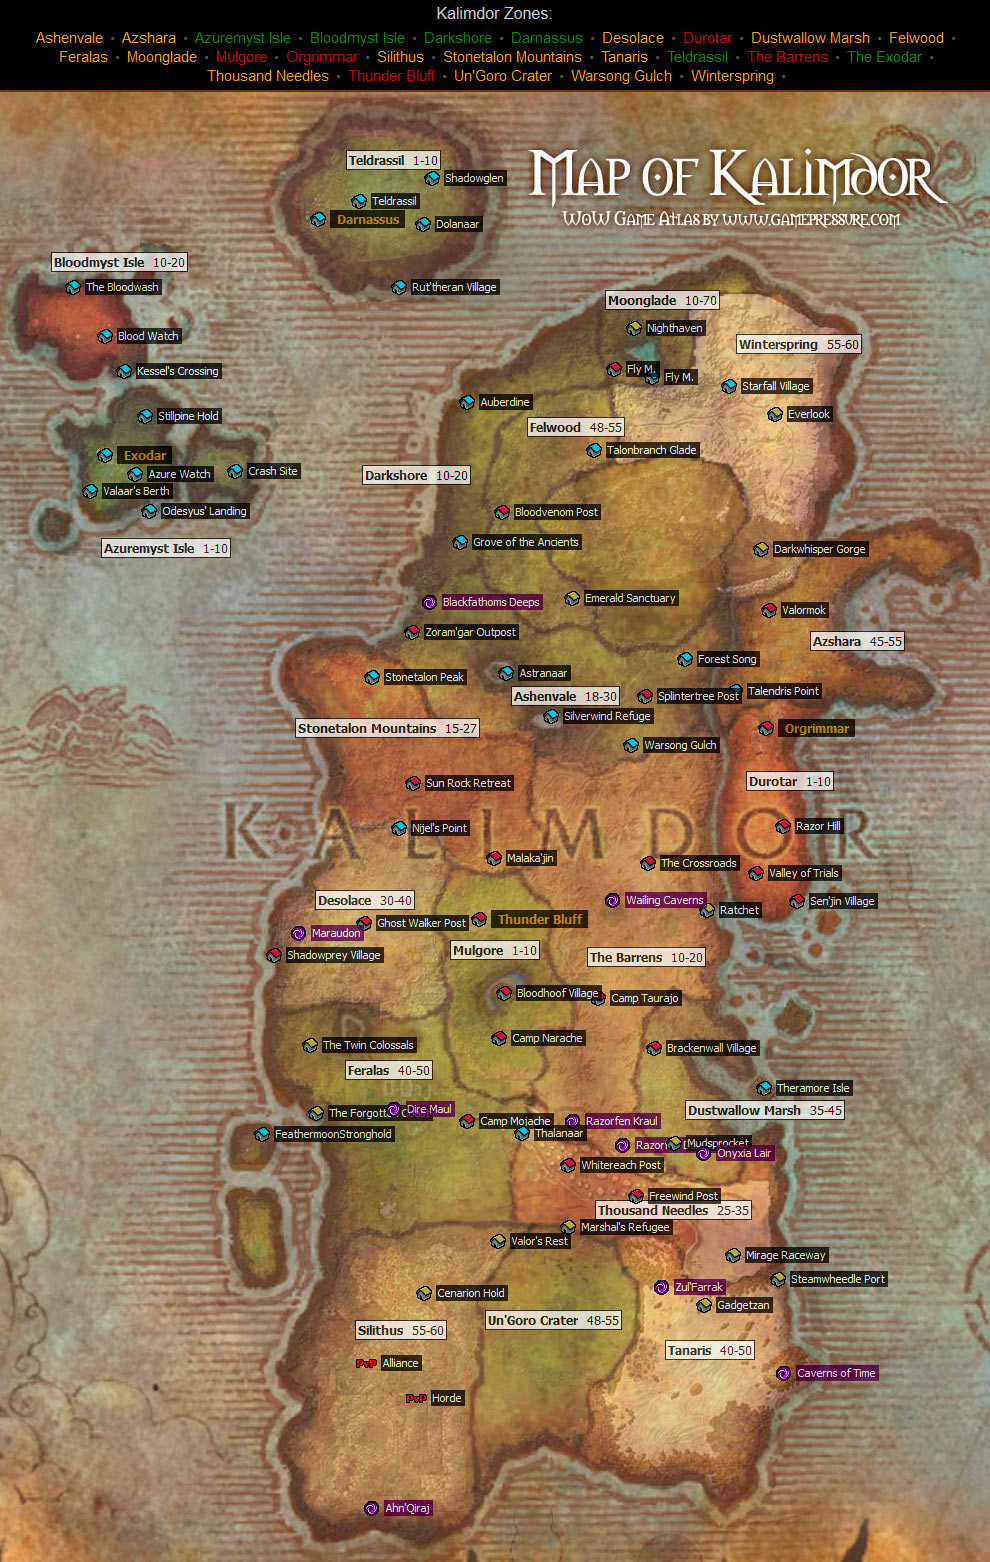 Kalimdor Map From World Of Warcraft Game Maps Com